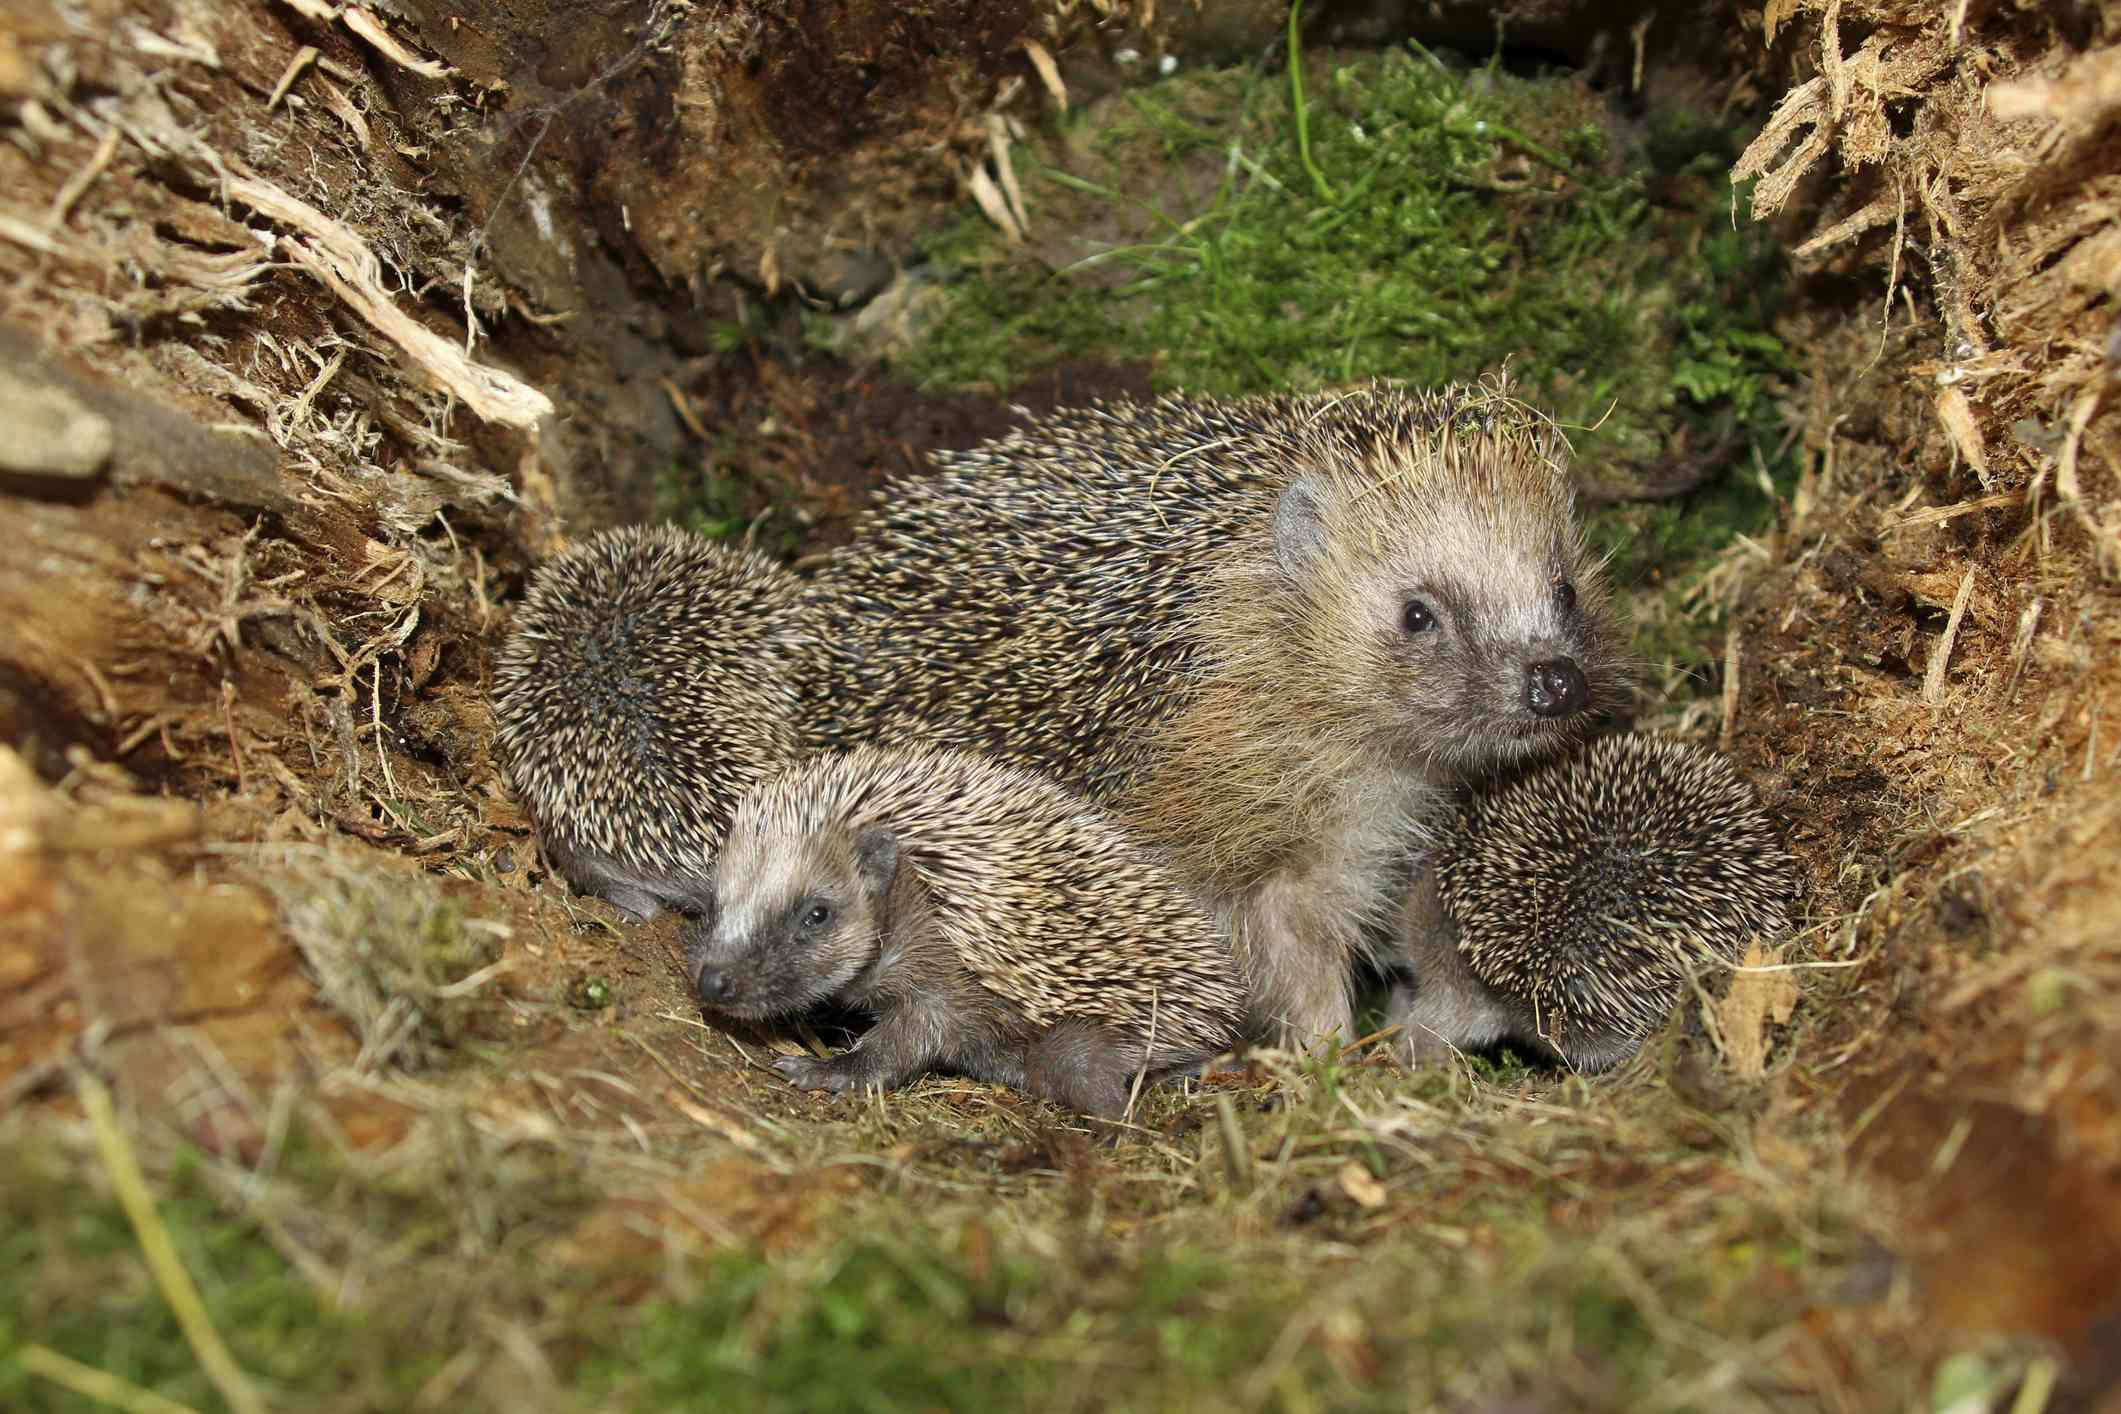 An array of hedgehogs, mother and babies, at their nest in a tree stump